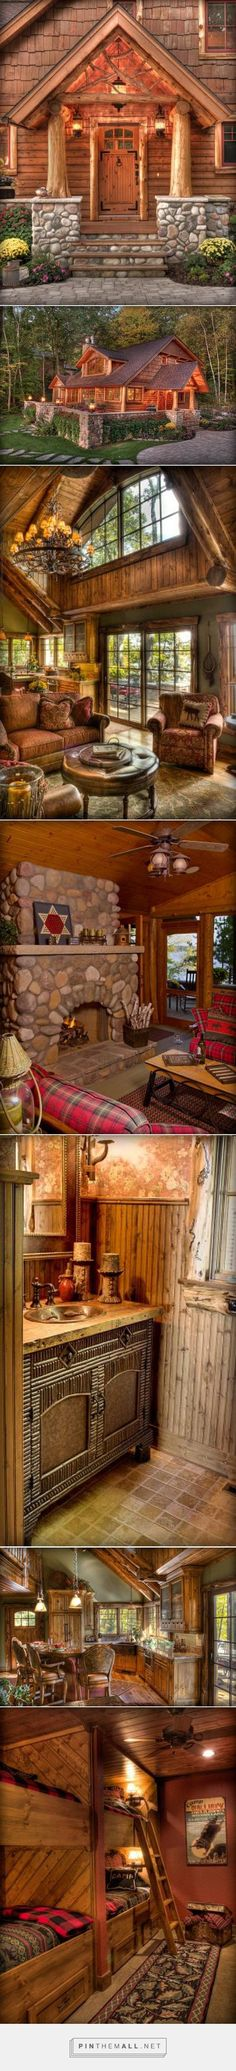 This house is ticking off all the boxes for me in what I want in a log home. - collage created via http://pinthemall.net